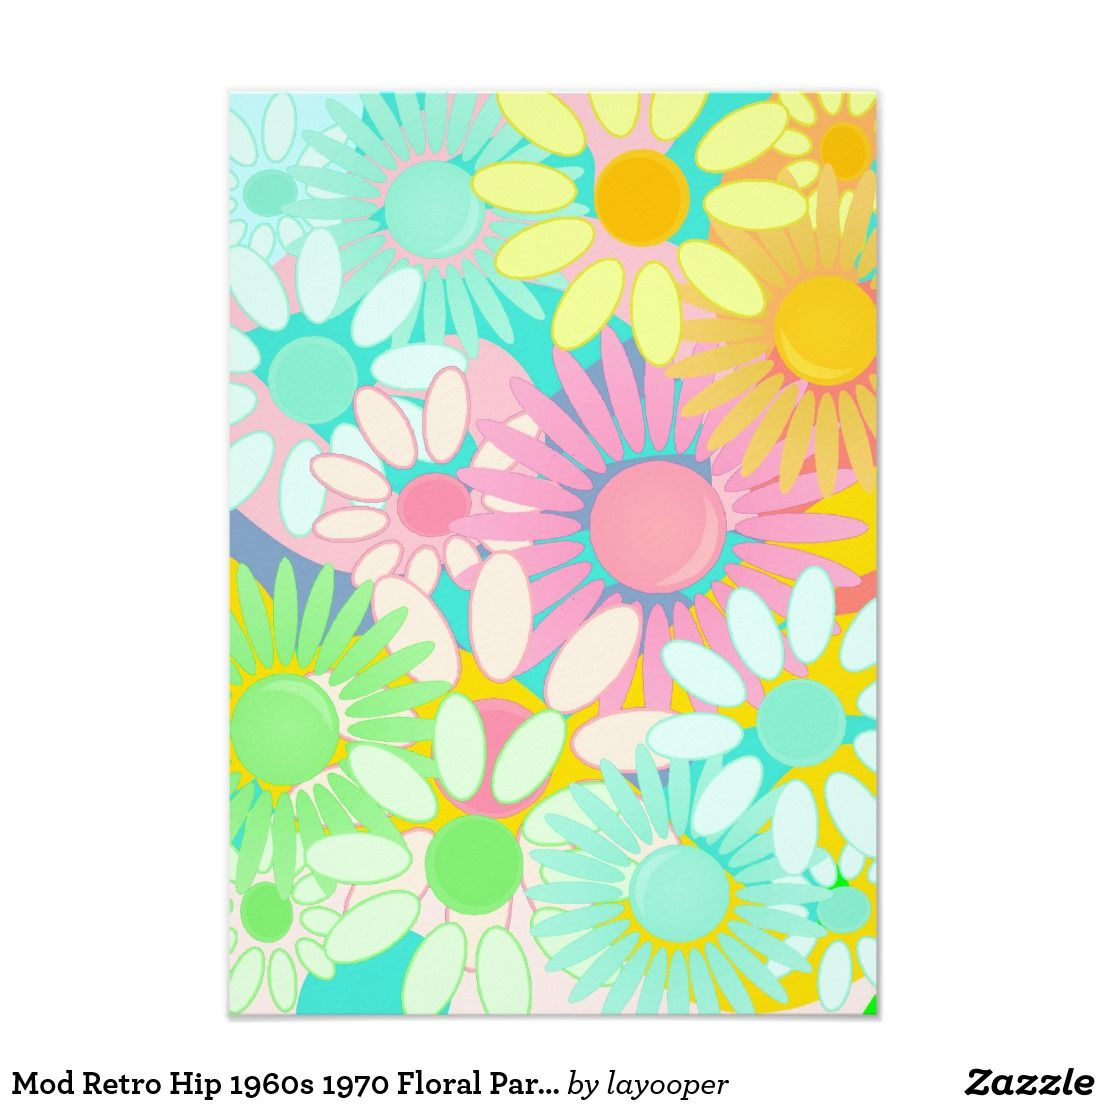 Mod Retro Hip 1960s 1970 Floral Party linvitations Card | Party ...